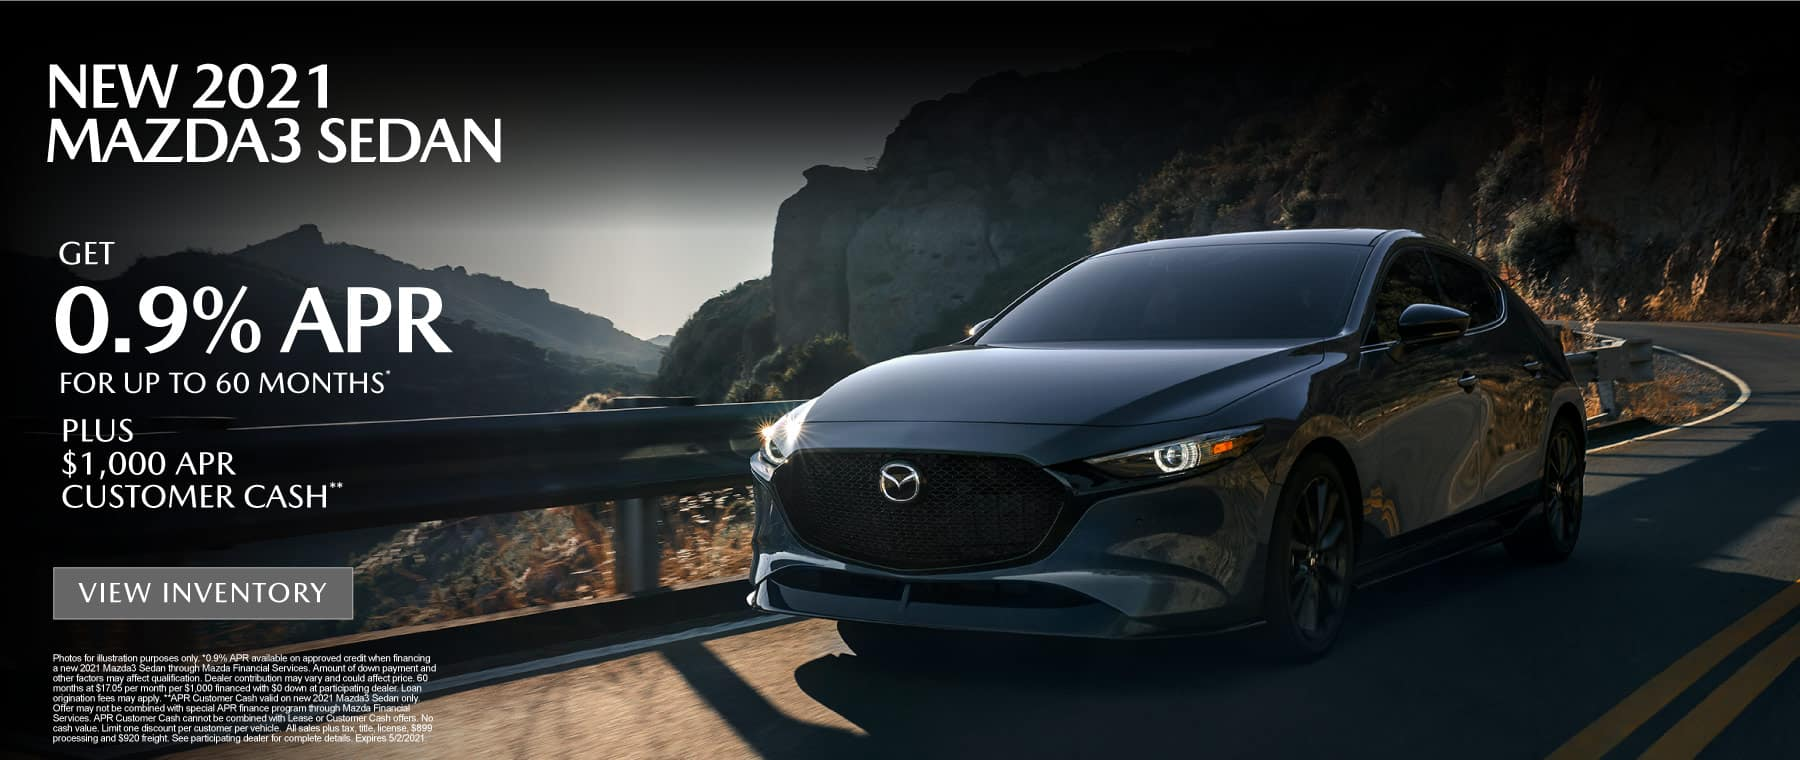 NEW 2021 MAZDA3 SEDAN – Get 0.9% APR for up to 60 months PLUS $1,000 Customer Cash View inventory.